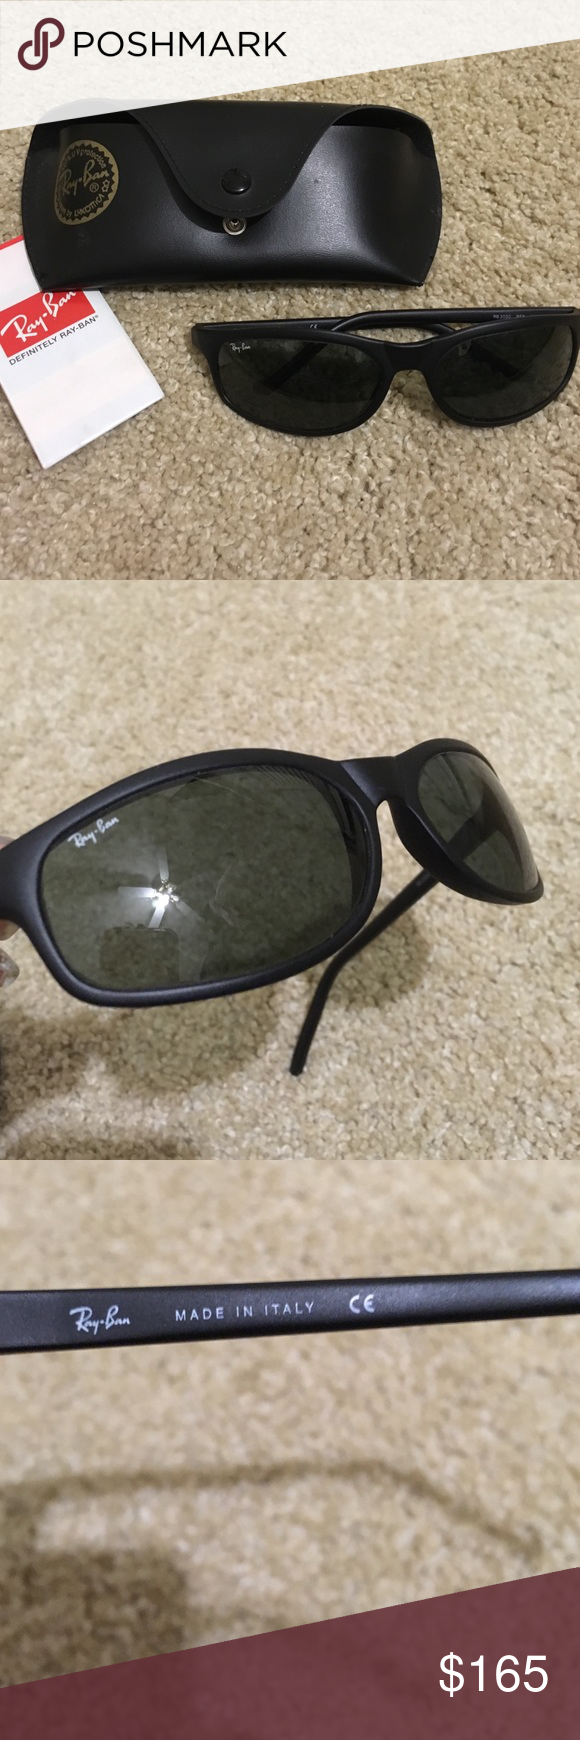 851a3953ce7 Old school predator ray bans Very good condition ray bans! Vintage! RB 2030  PS8